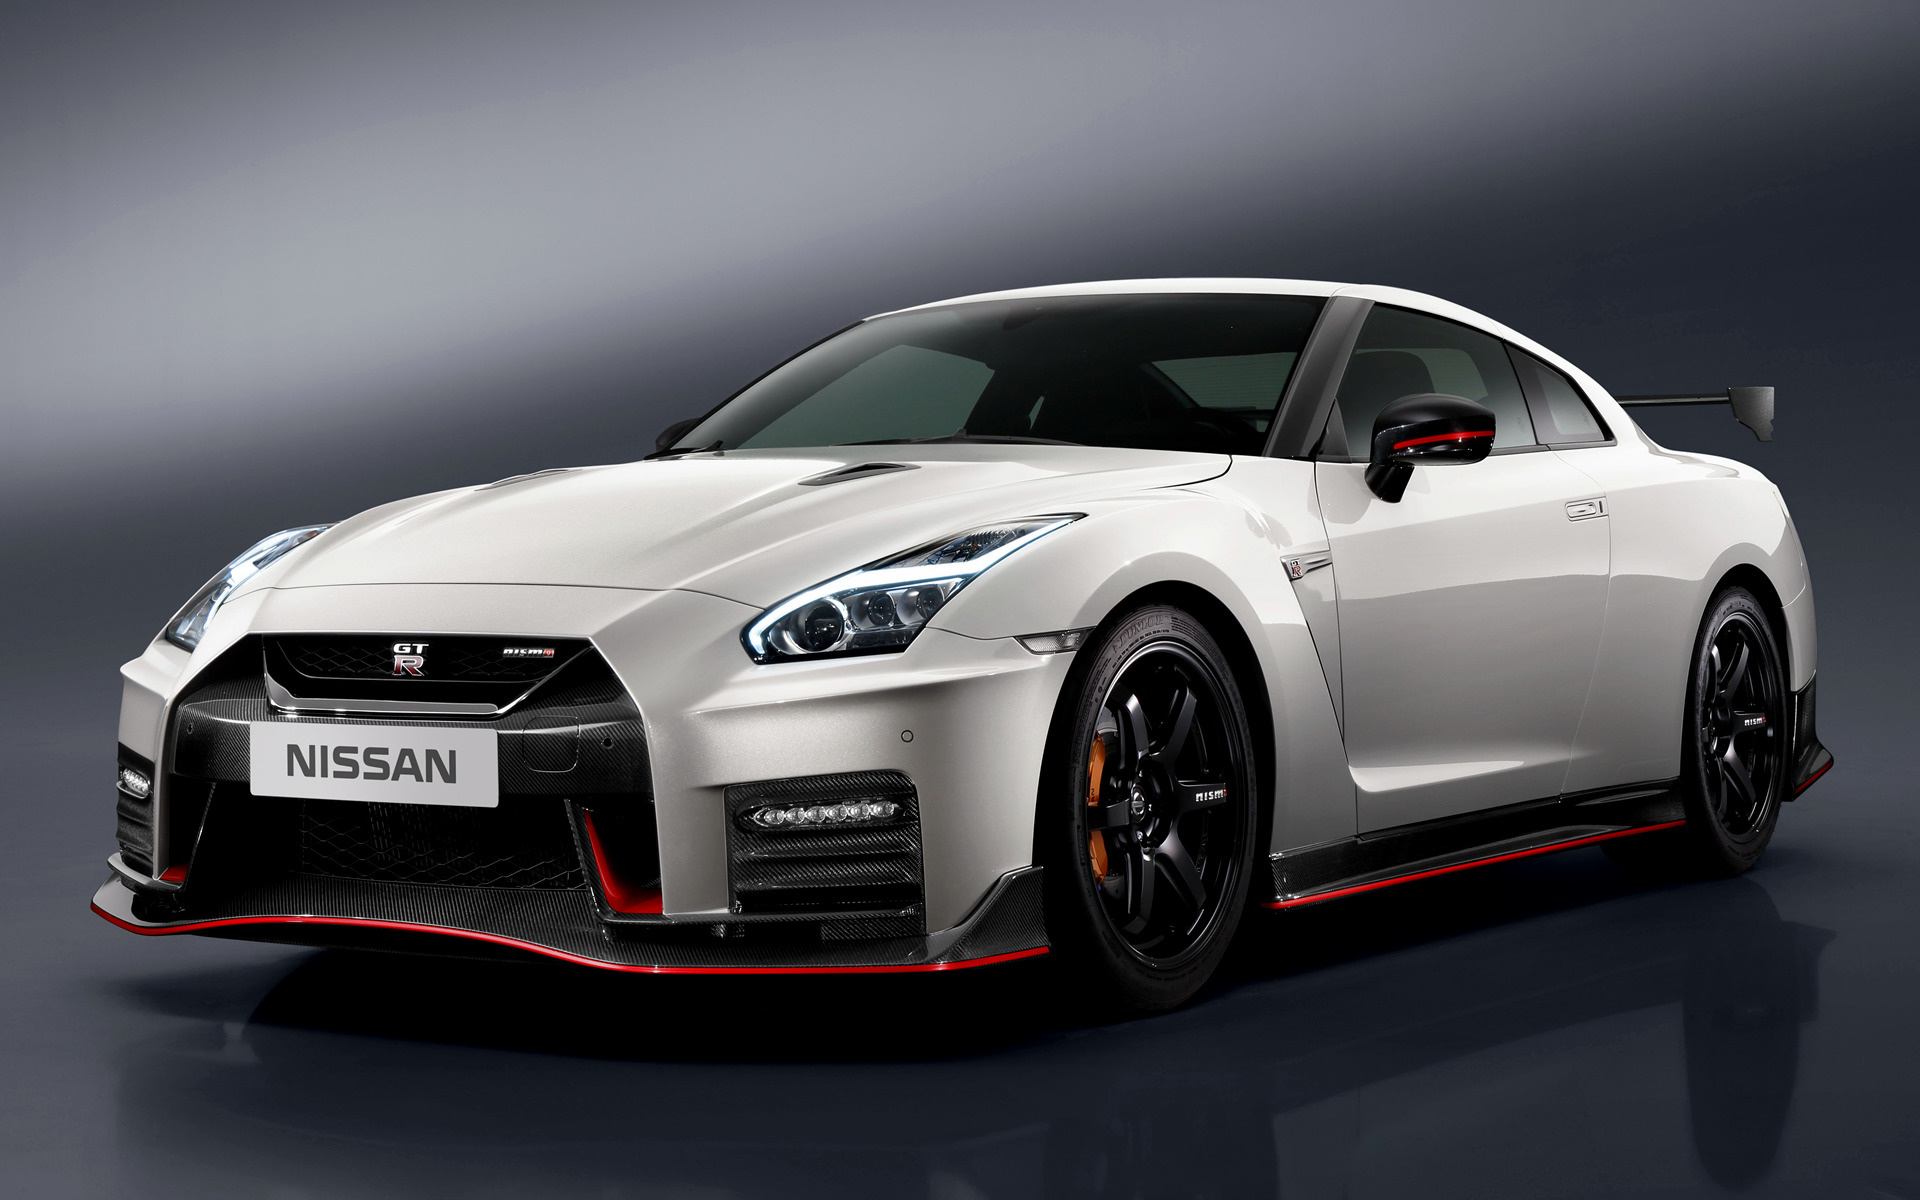 Nissan GT R Nismo 2016 Wallpapers and HD Images   Car Pixel 1920x1200